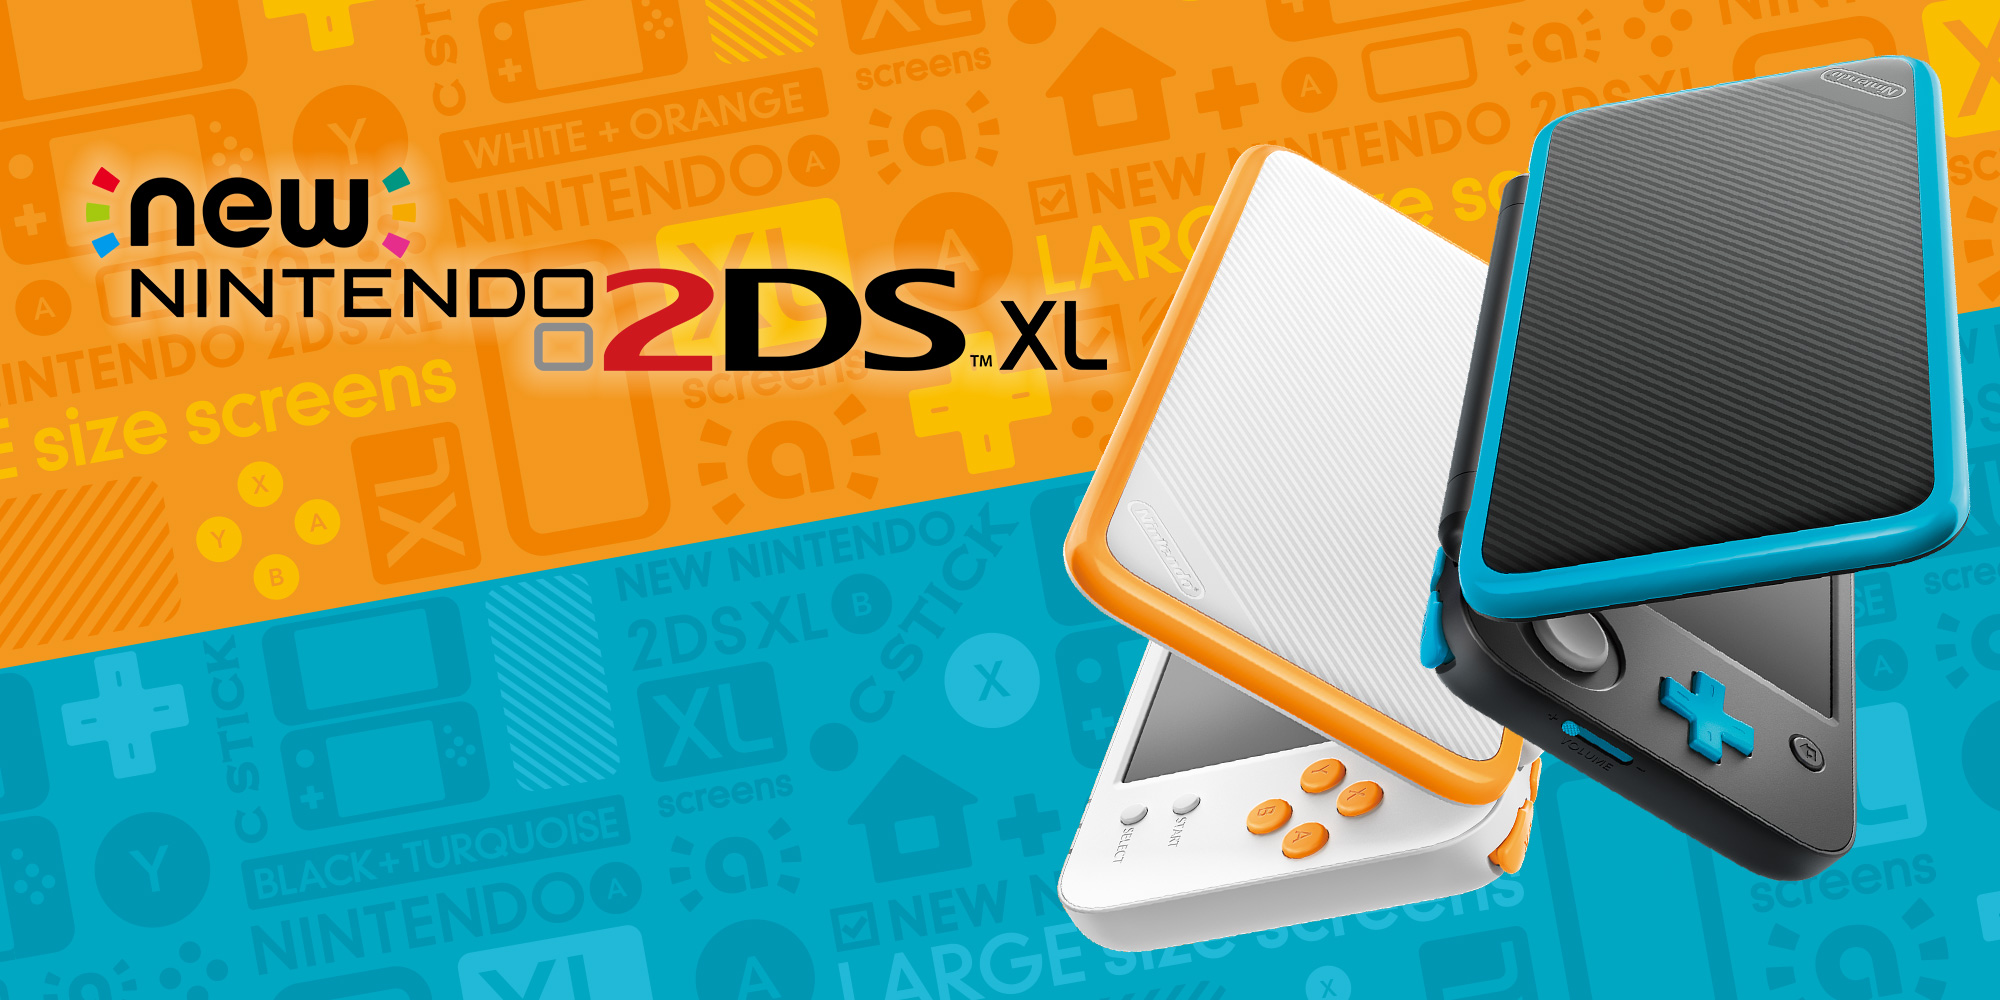 Nintendo ci invita al Tour New Nintendo 2DS XL